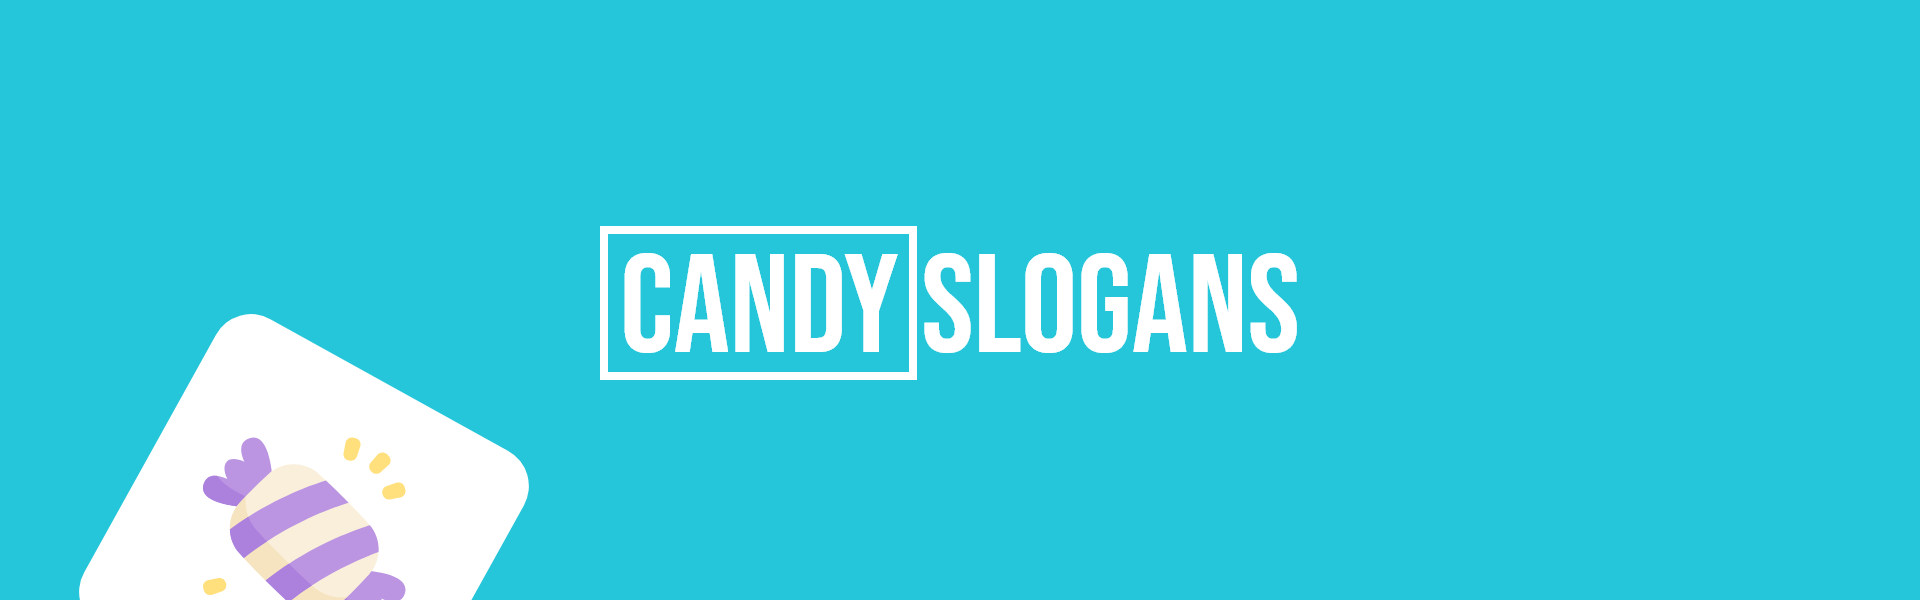 candy slogans taglines